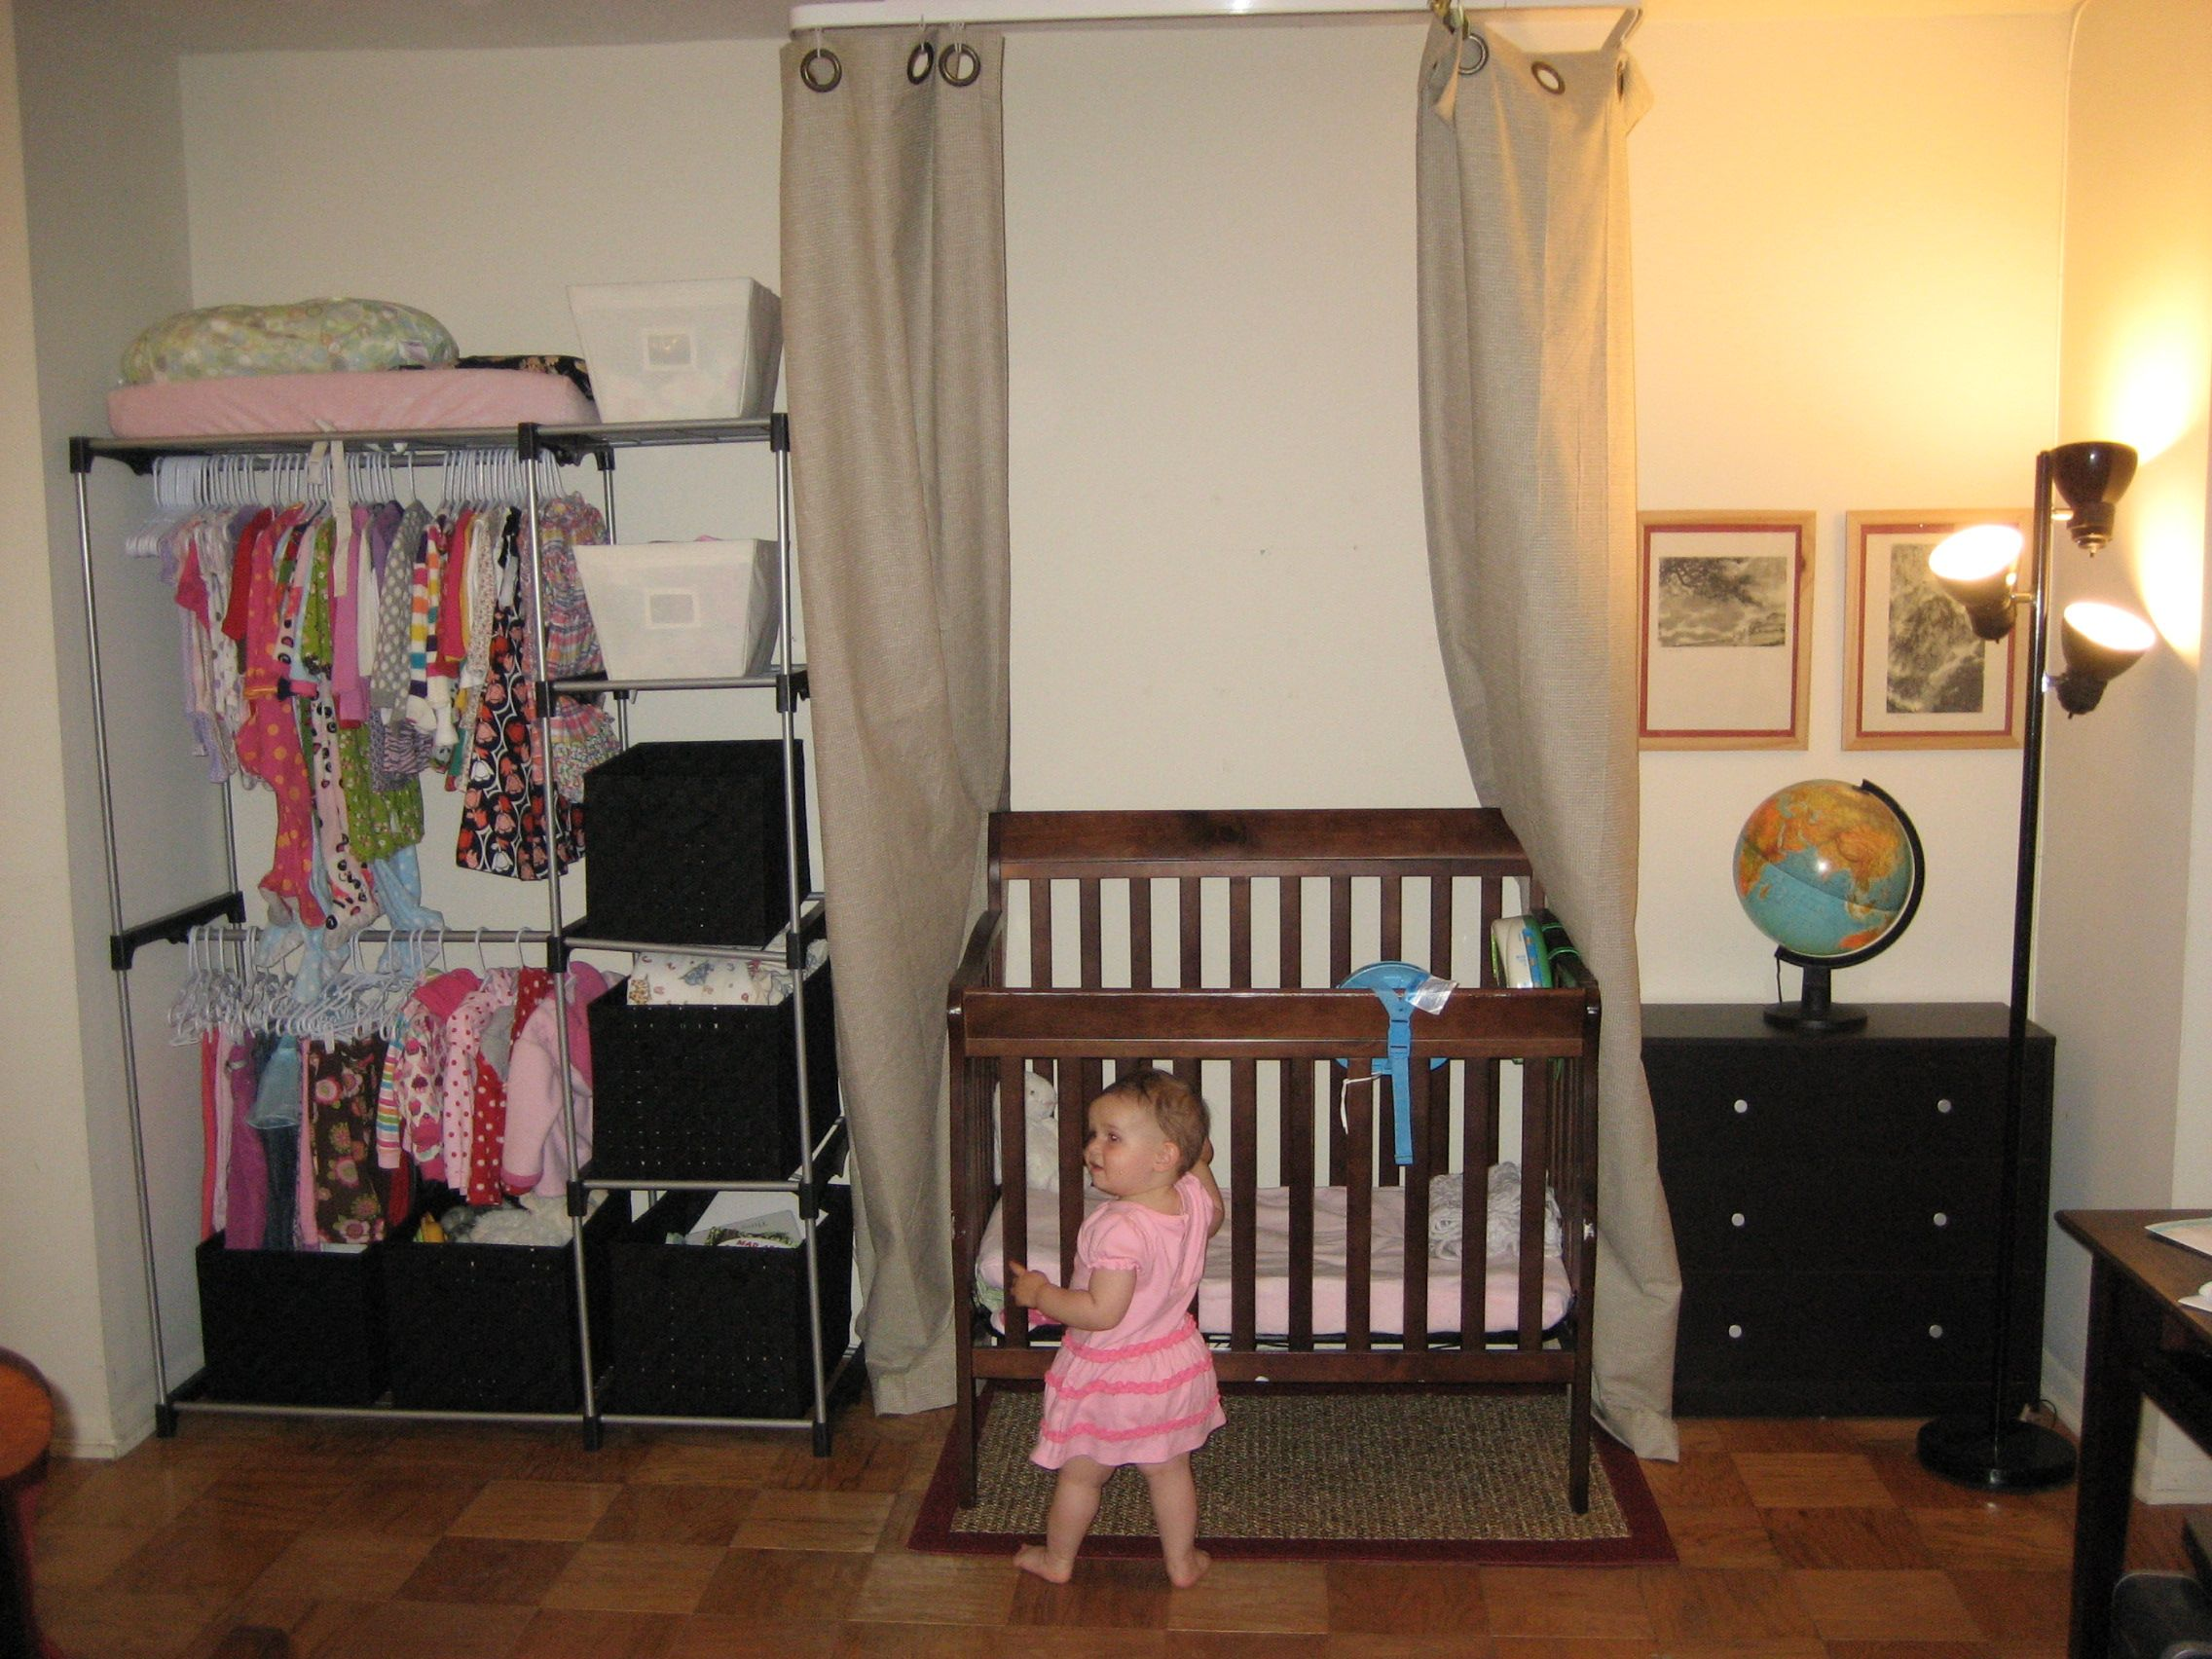 One Bedroom Flat Interior Design Can You Fit A Baby Into A One Bedroom Apartment Bedroom